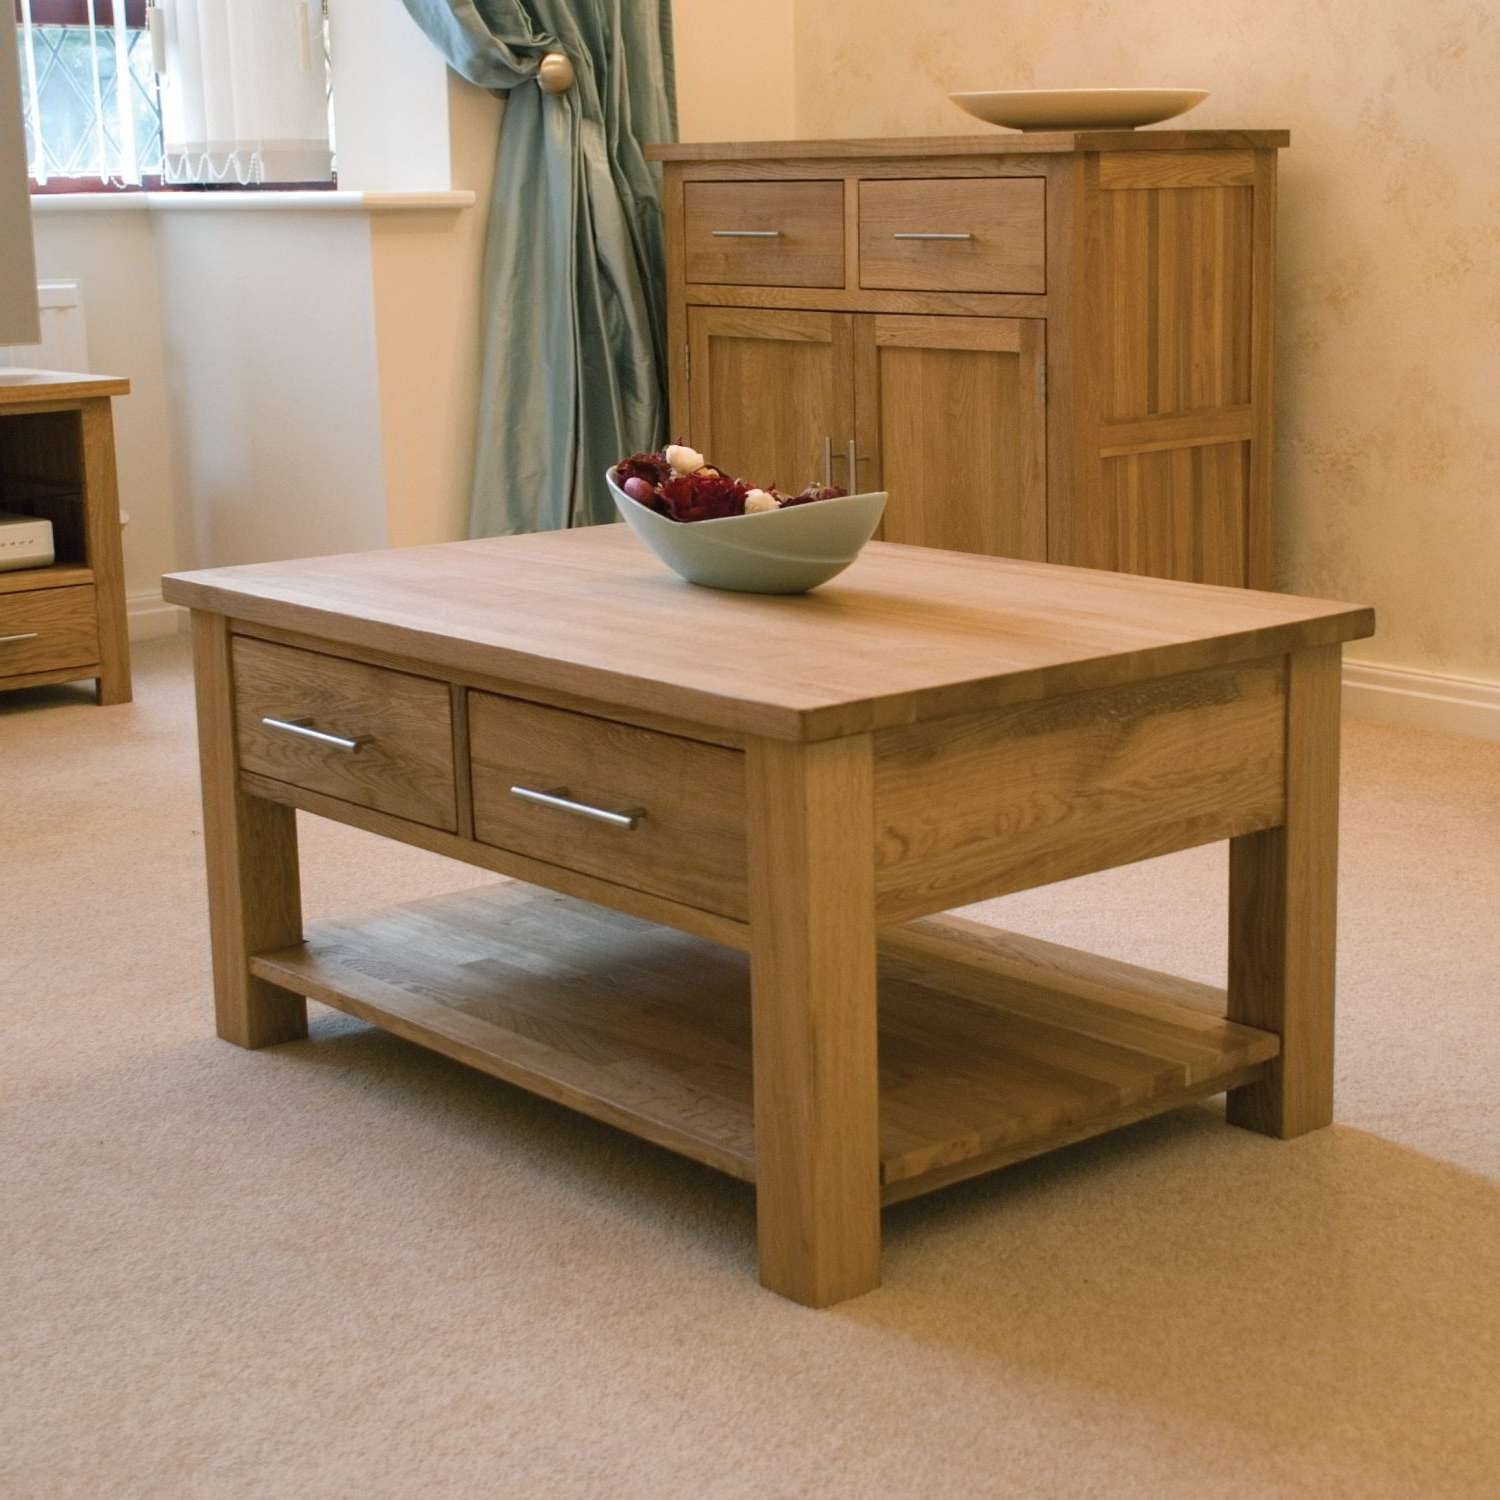 Best And Newest Hardwood Coffee Tables With Storage With Coffee Table : Fabulous Big Coffee Tables Rustic Square Coffee (View 2 of 20)